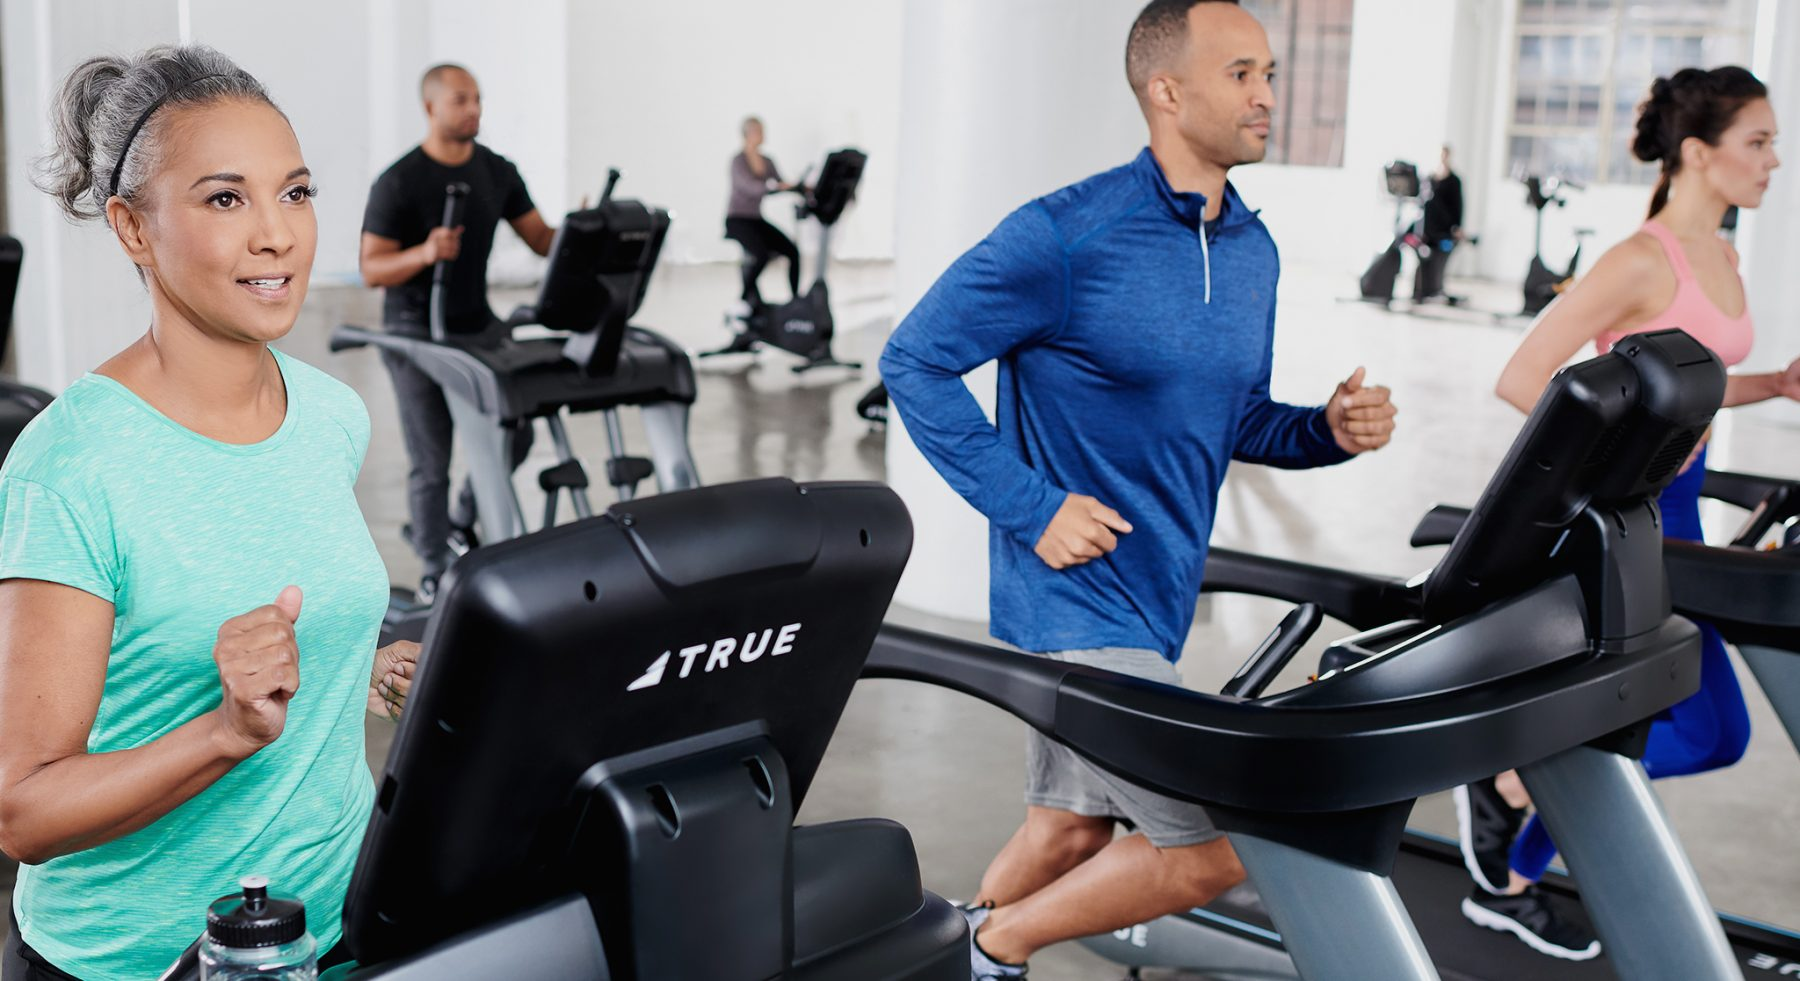 Cardio equipment from TRUE Fitness.